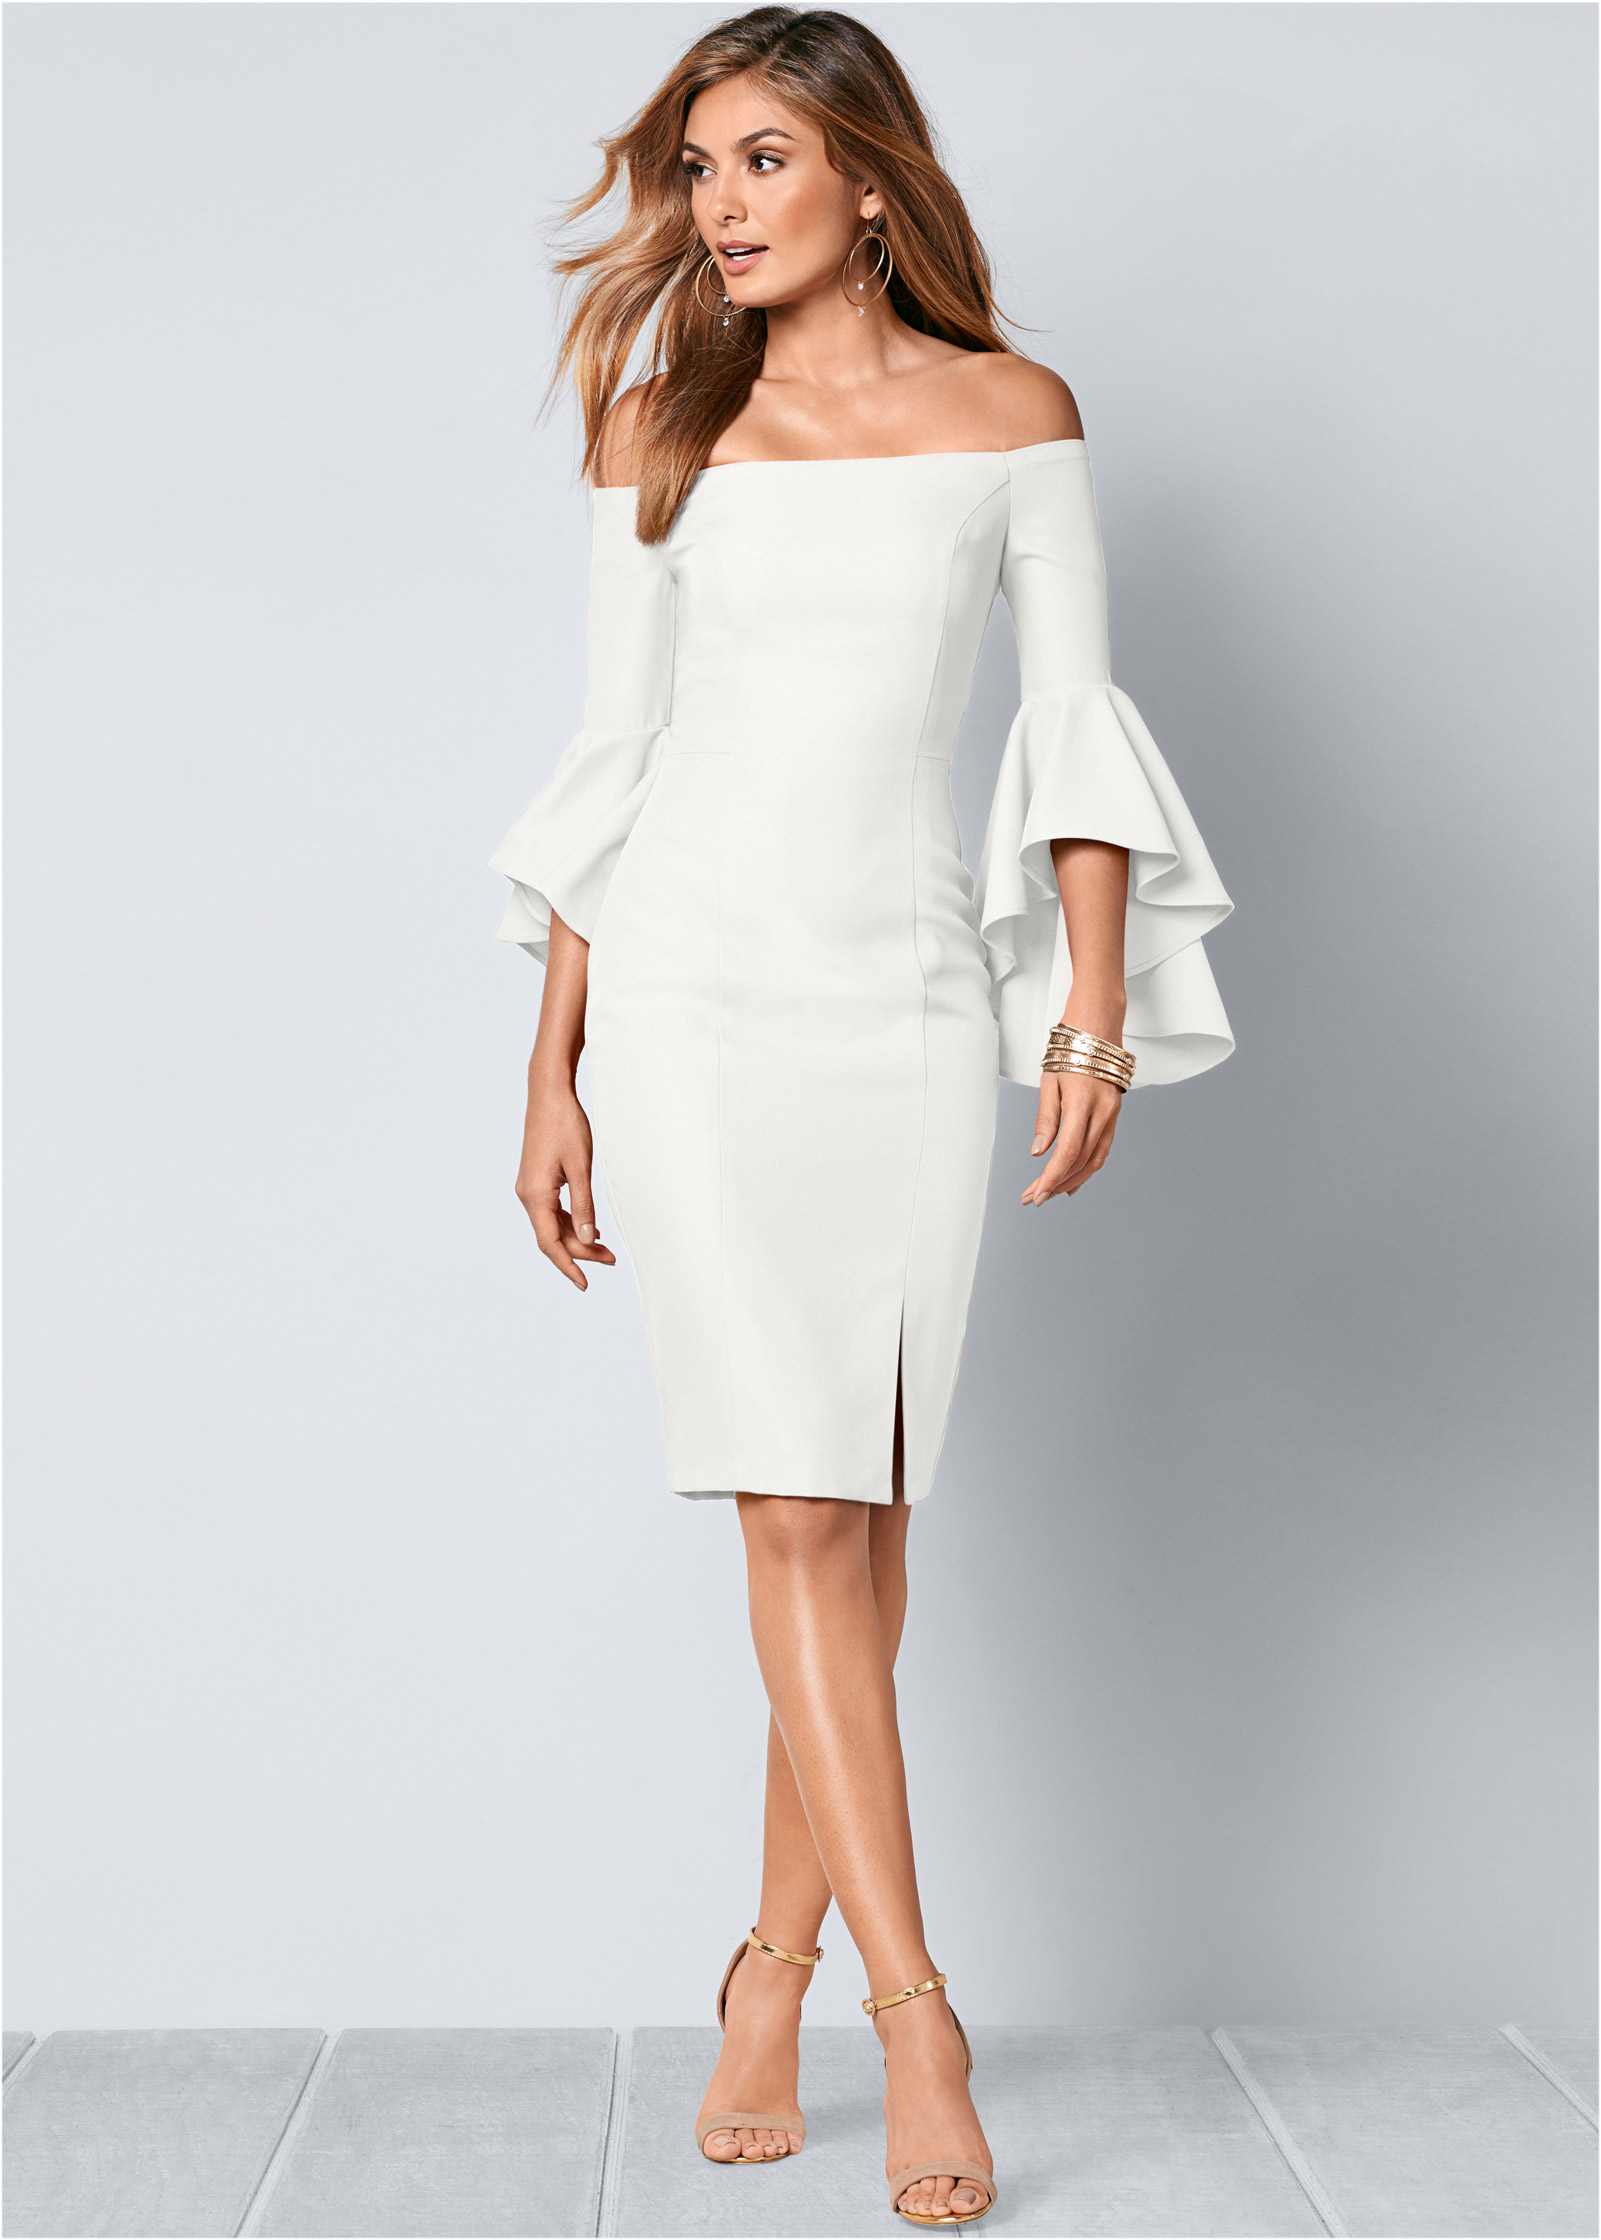 Dress Formal for women with sleeves fotos